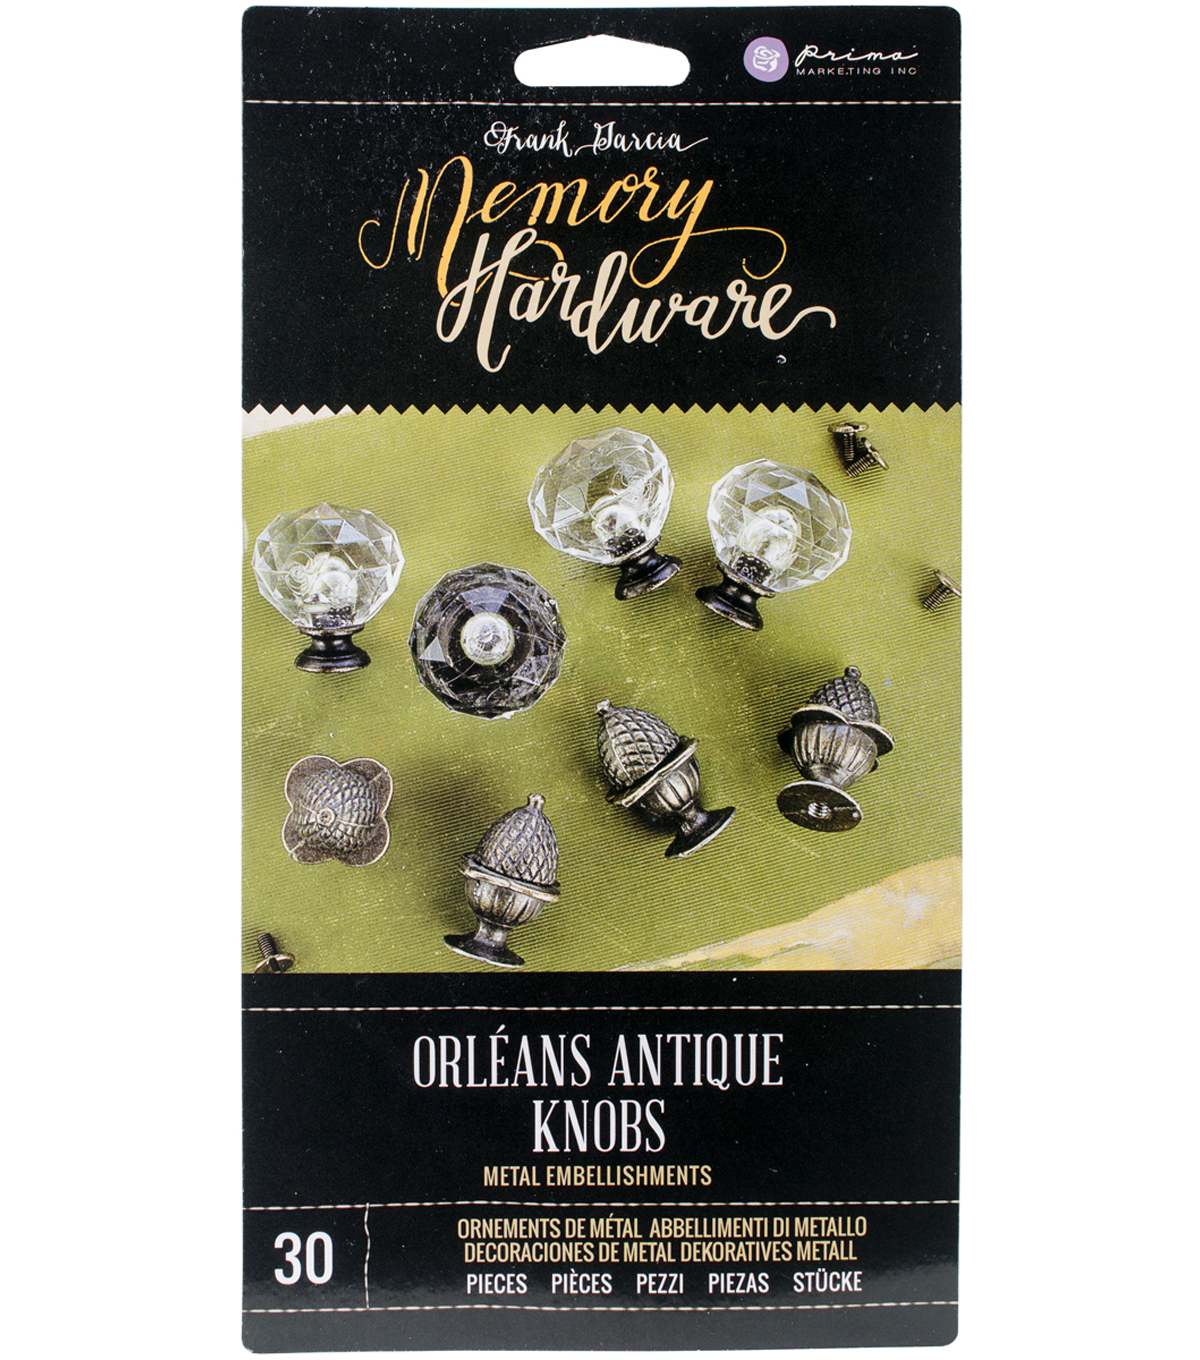 Prima Marketing Memory Hardware Orleans Antique Knobs